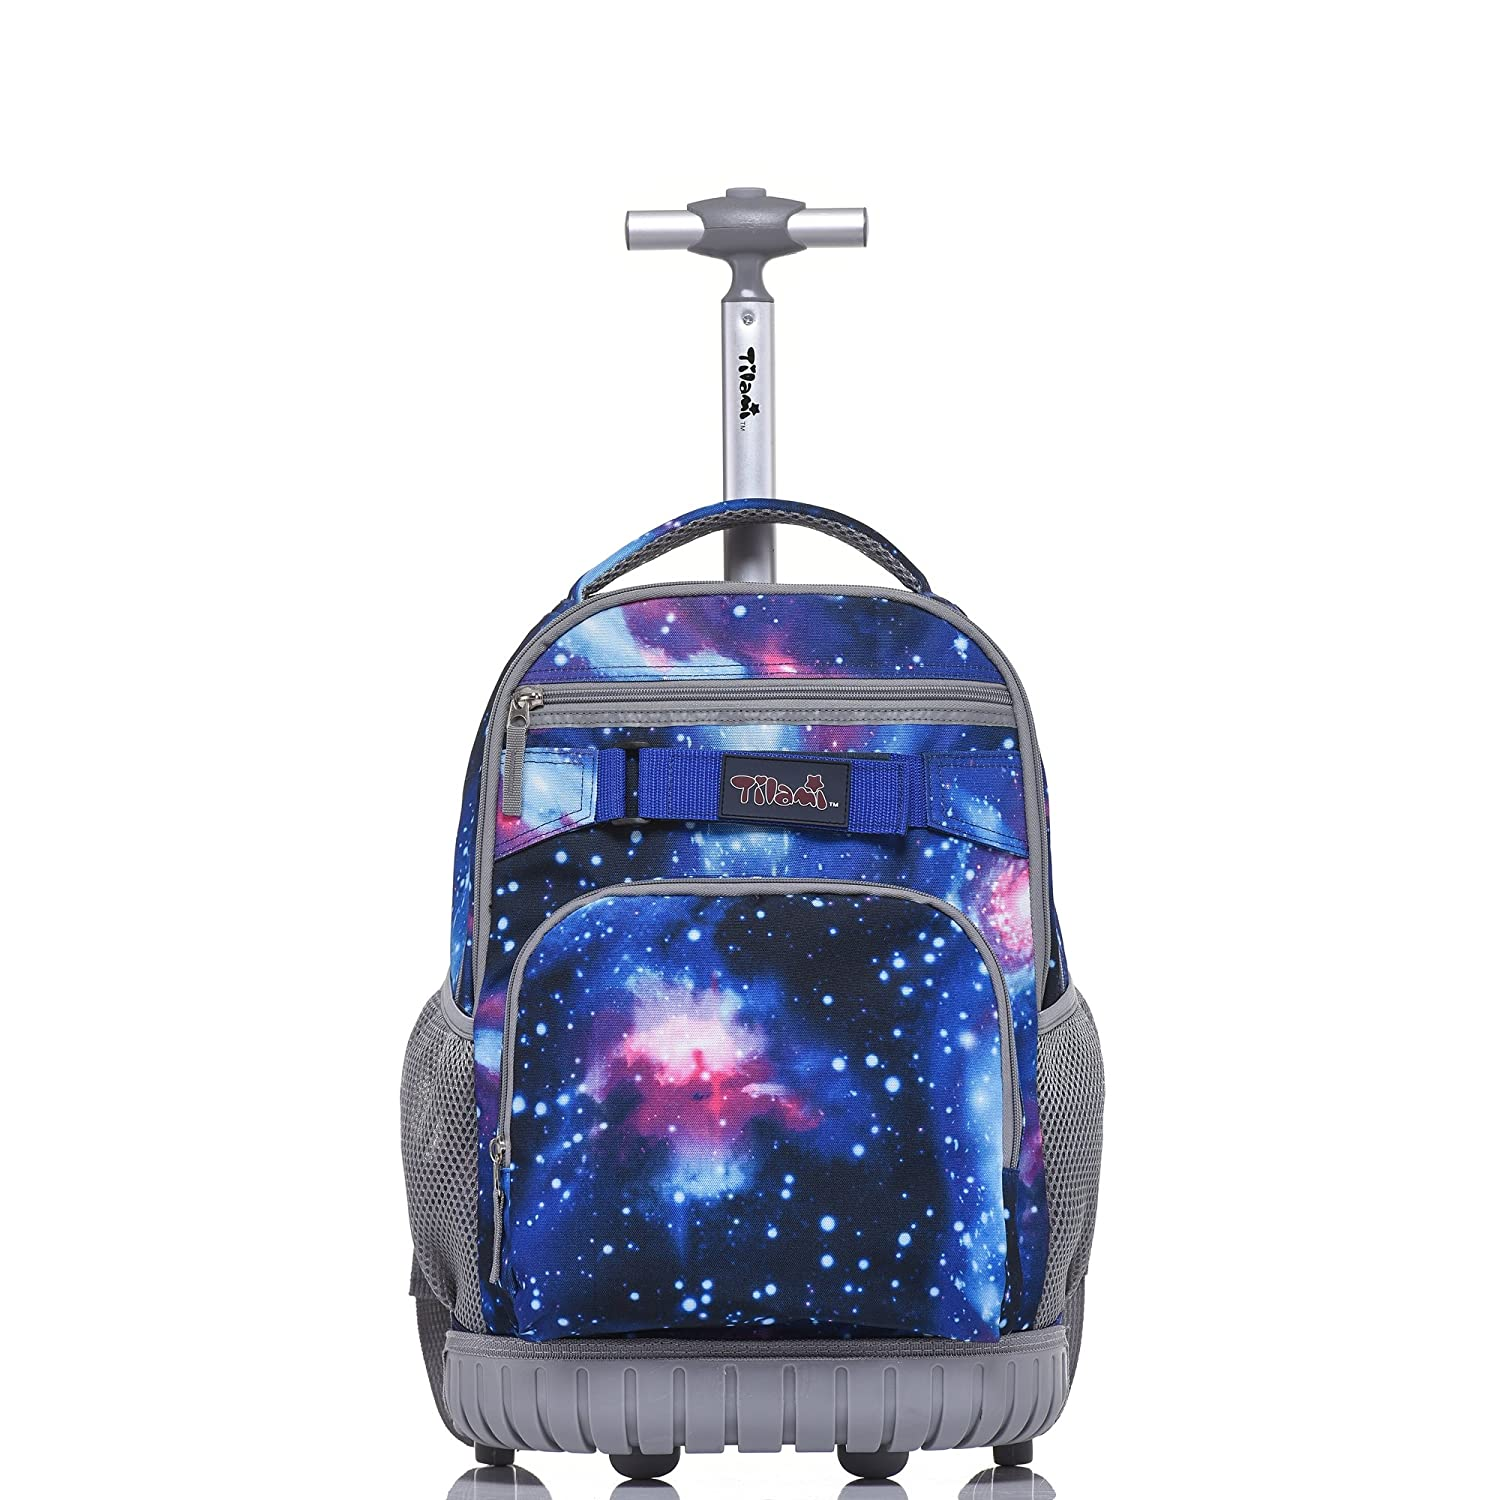 tilami新しい、防汚性デザイン18インチオーバーサイズロードmulti-compartment Wheeled RollingバックパックLuggage For Kids B07F1GK8NK Blue Galaxy 1